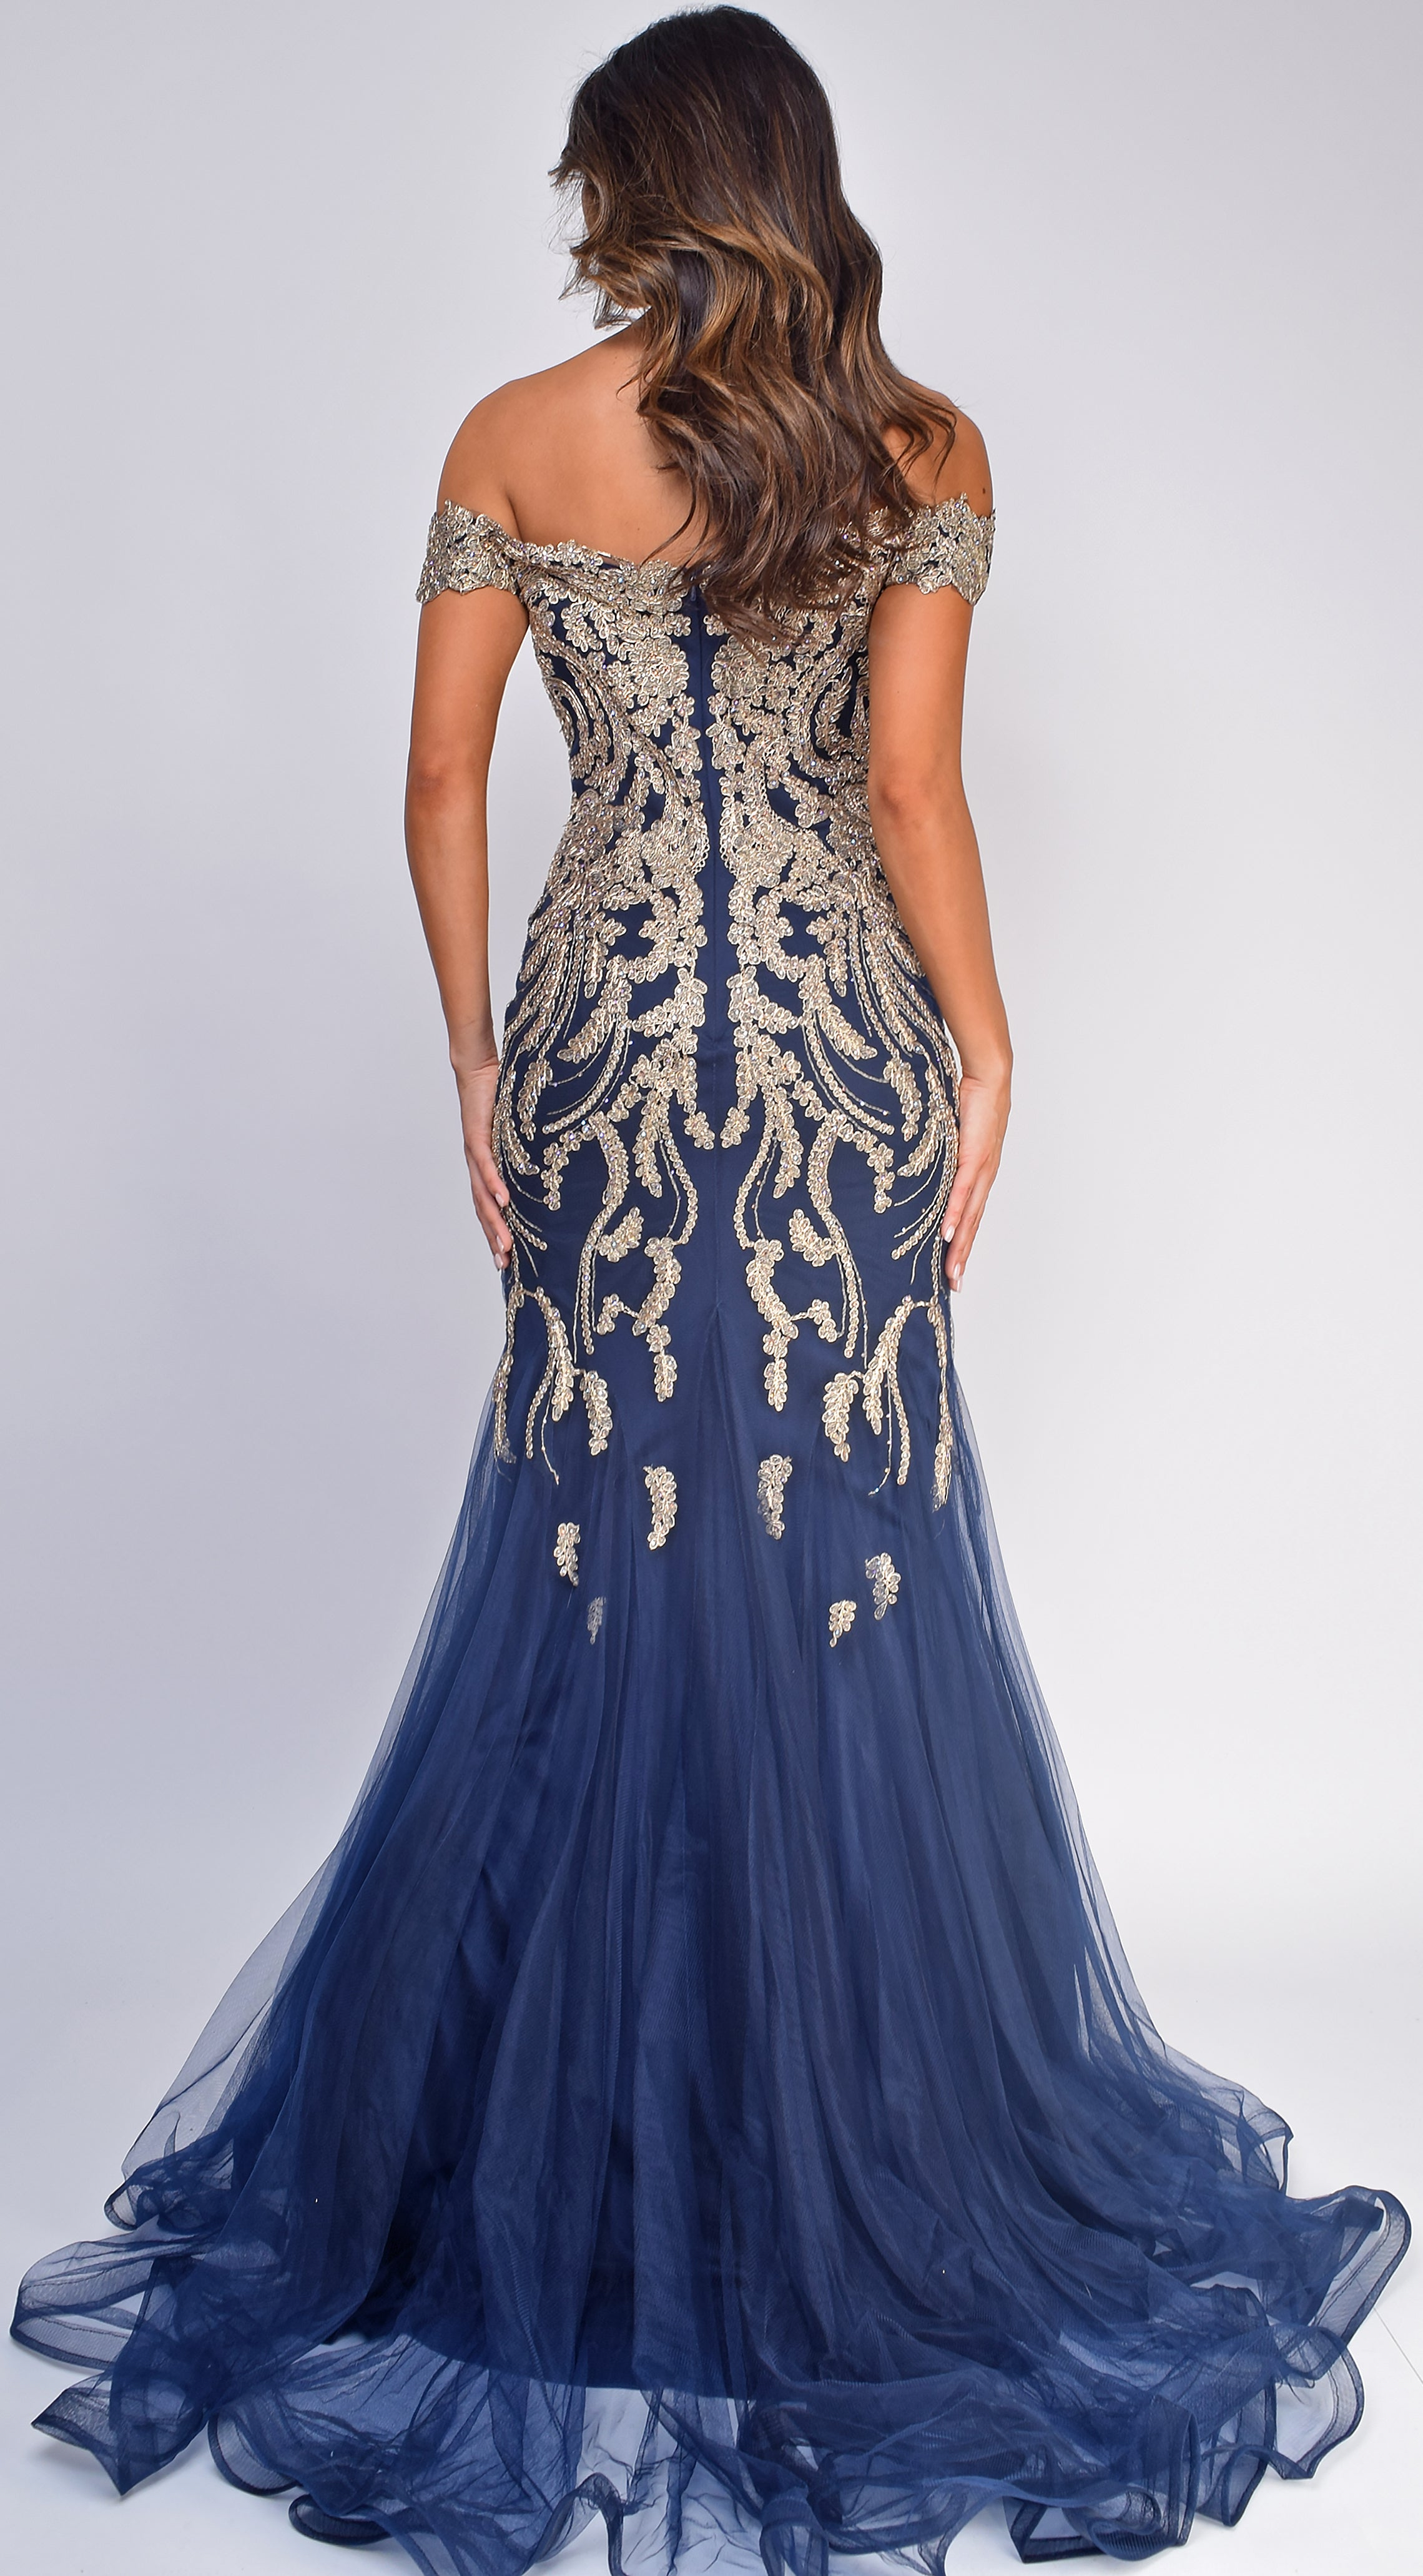 Arabelle Gold Navy Off Shoulder Mermaid Gown